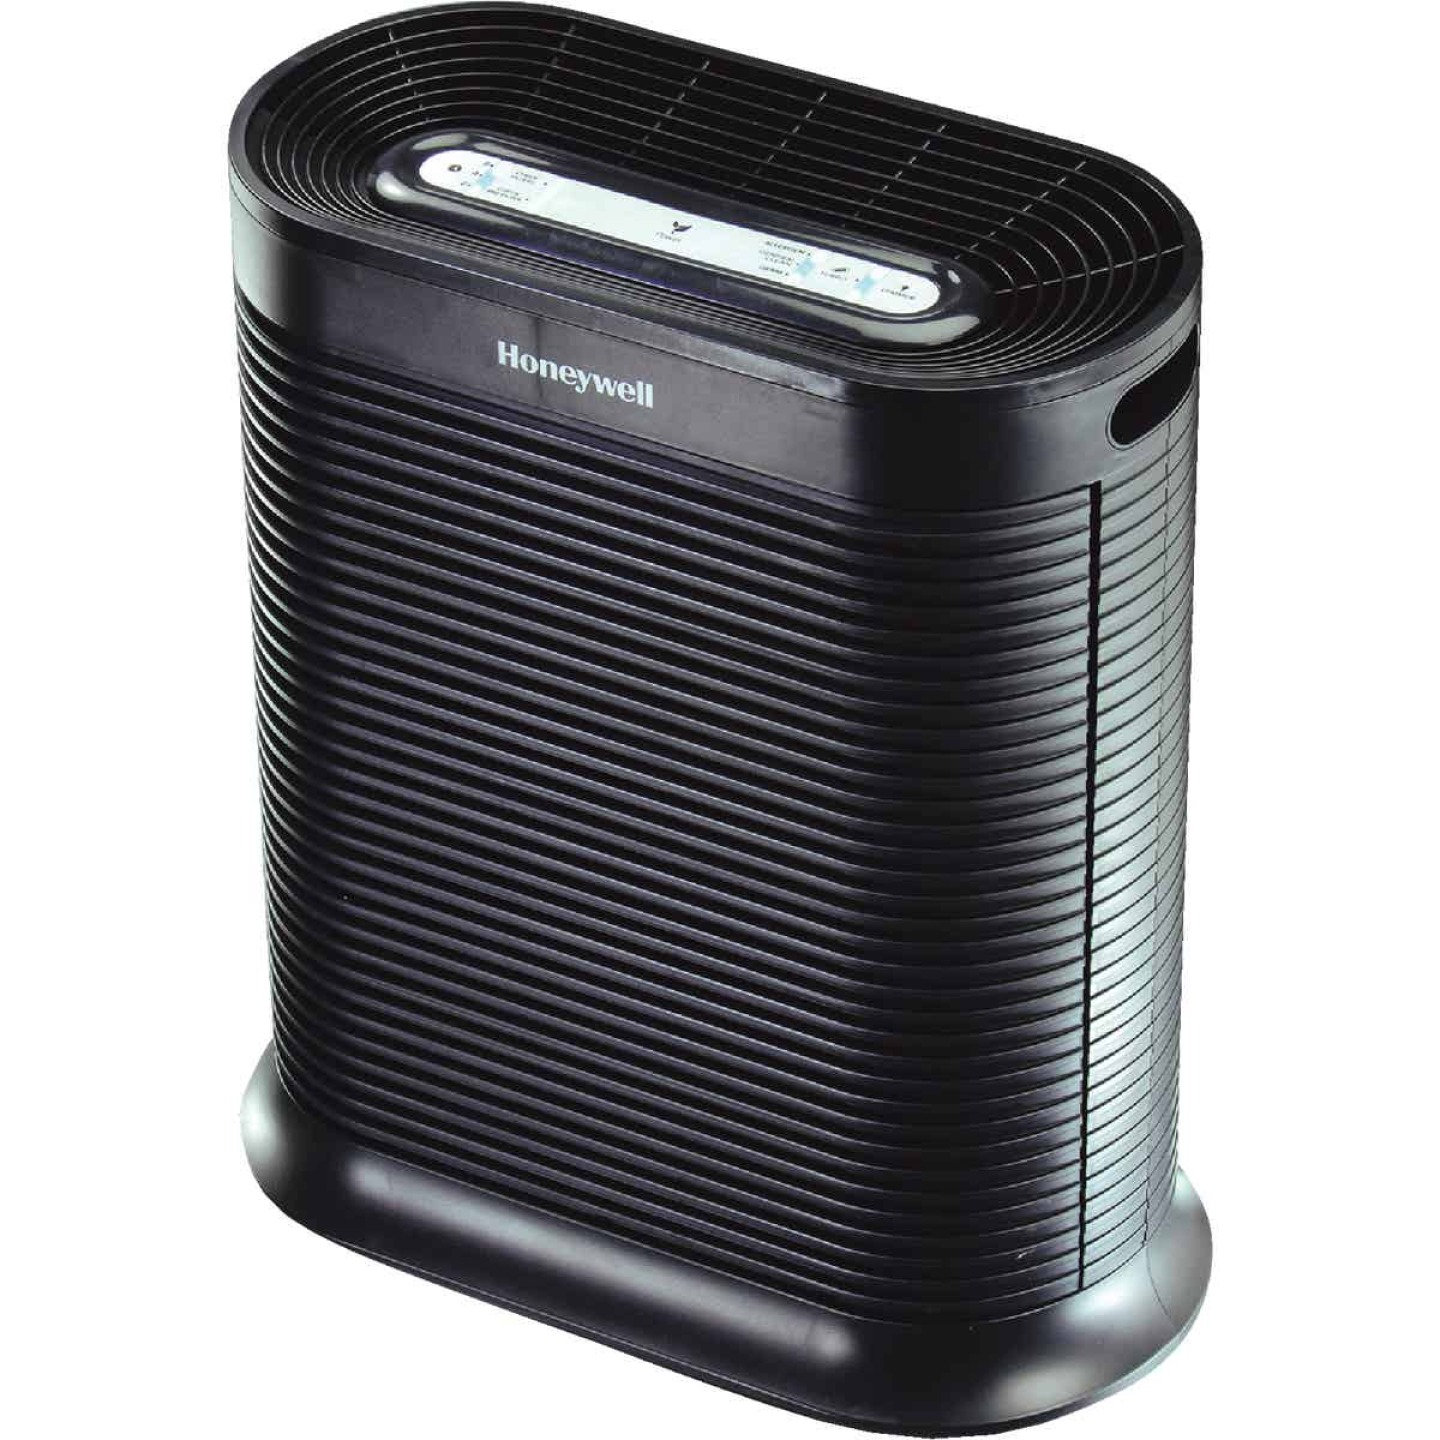 Honeywell True HEPA 456 Sq. Ft. Black Tabletop Large Room Air Purifier Image 1